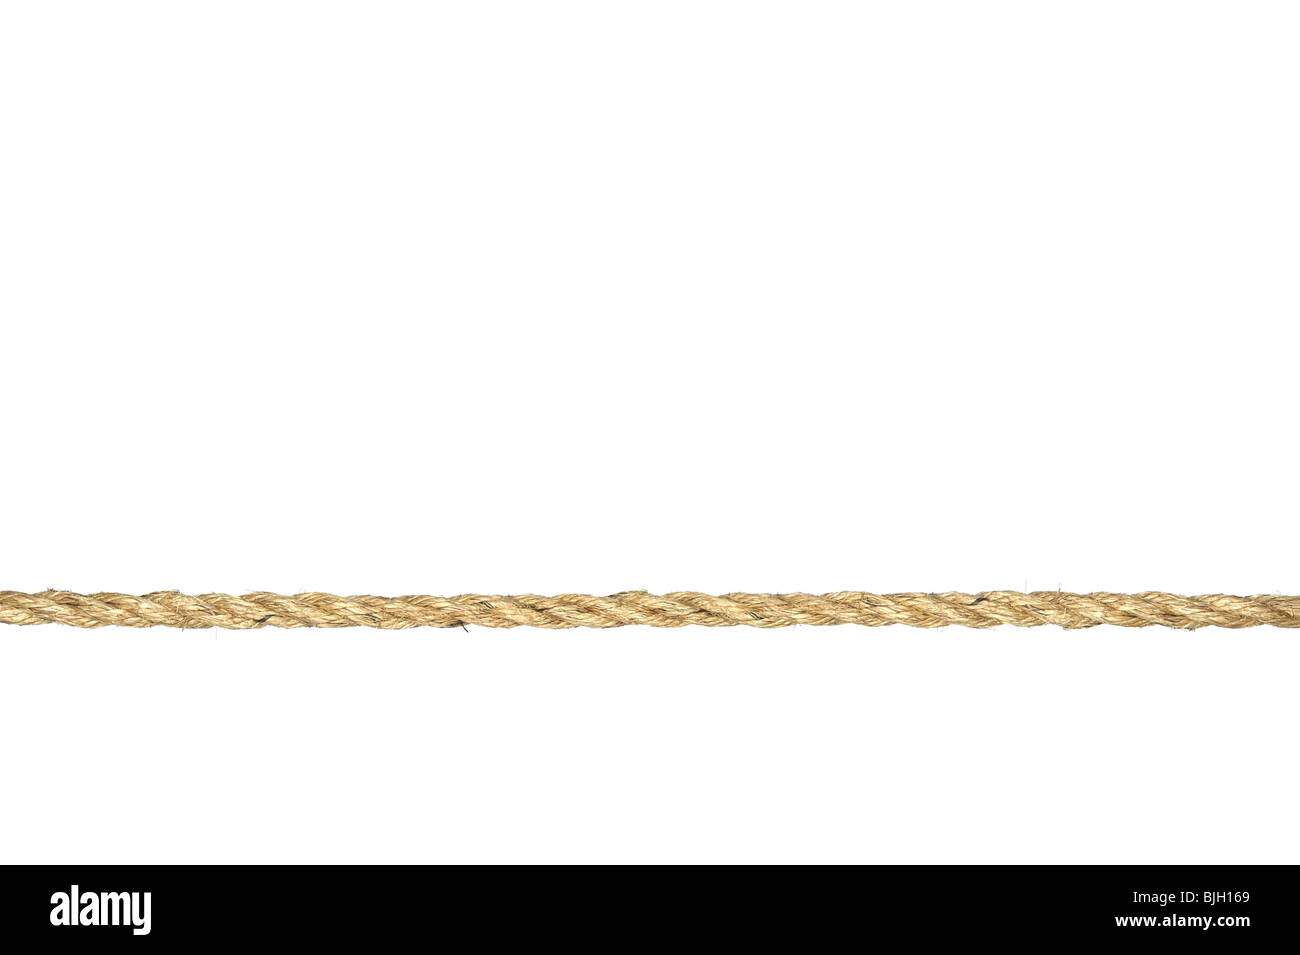 A straight line of twisted manila rope isolated on a white background. - Stock Image